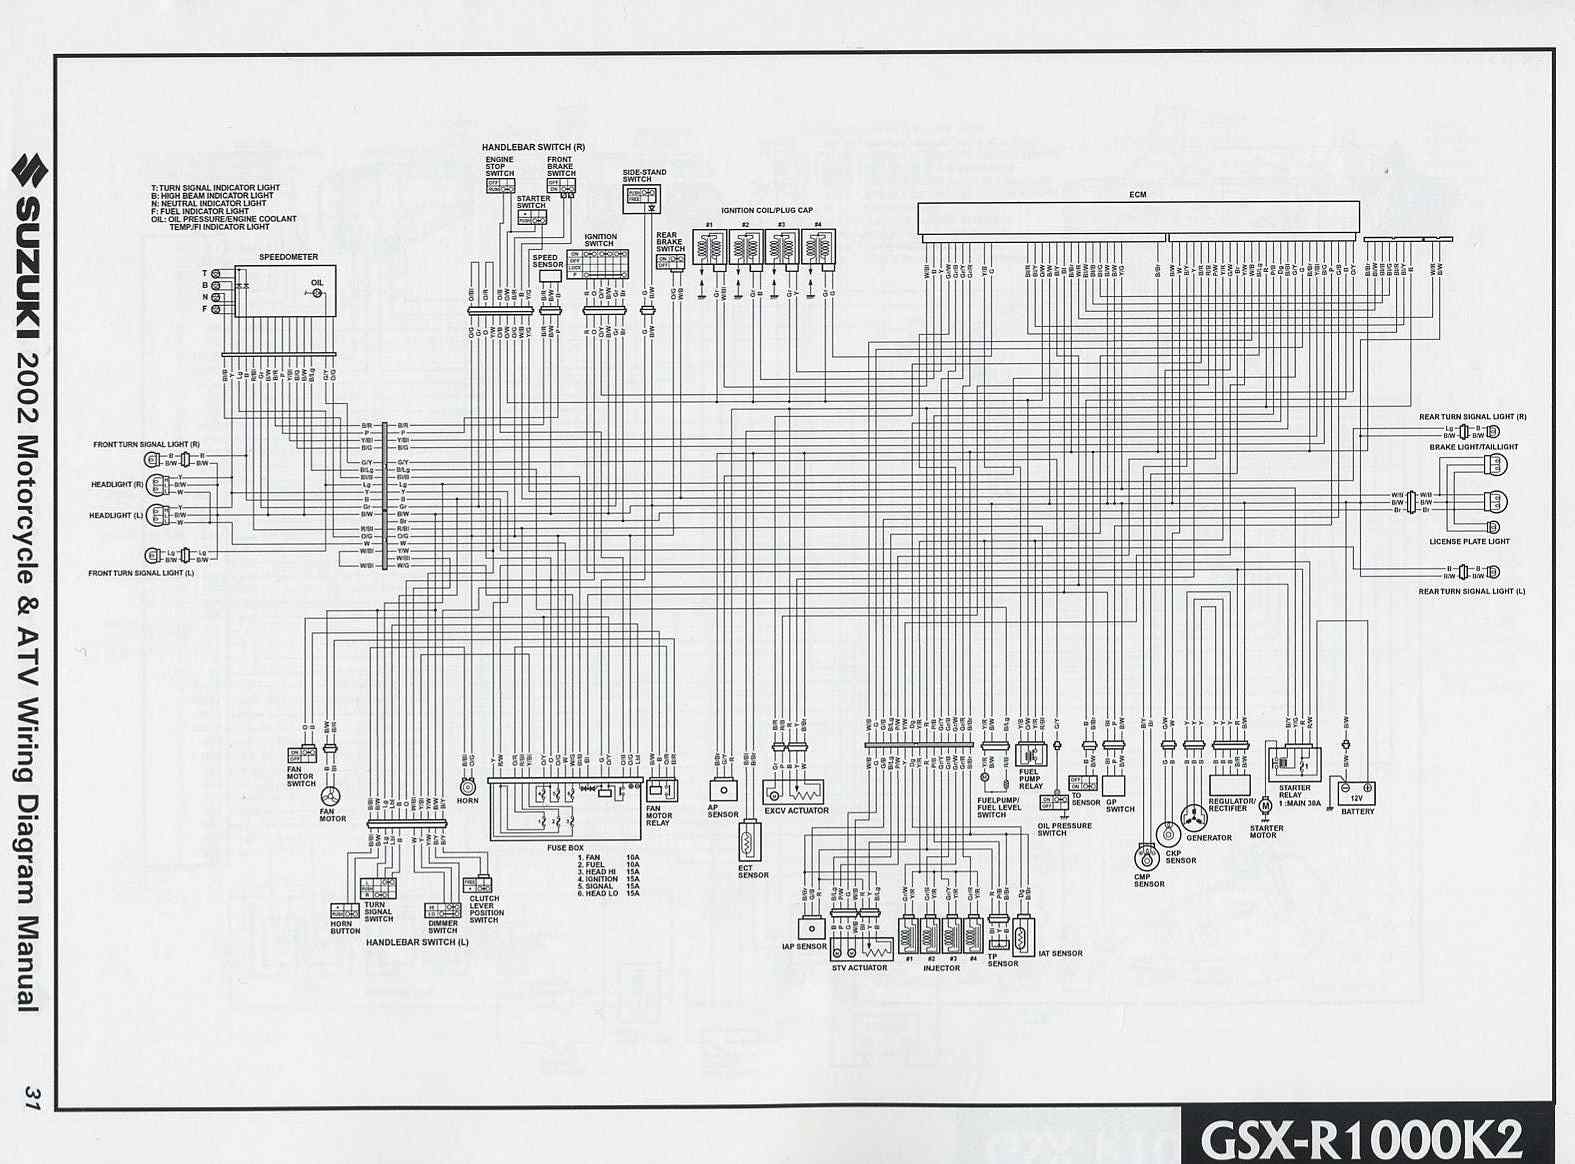 suzuki gsx r1000 k2 2002 motorcycle wiring diagram all